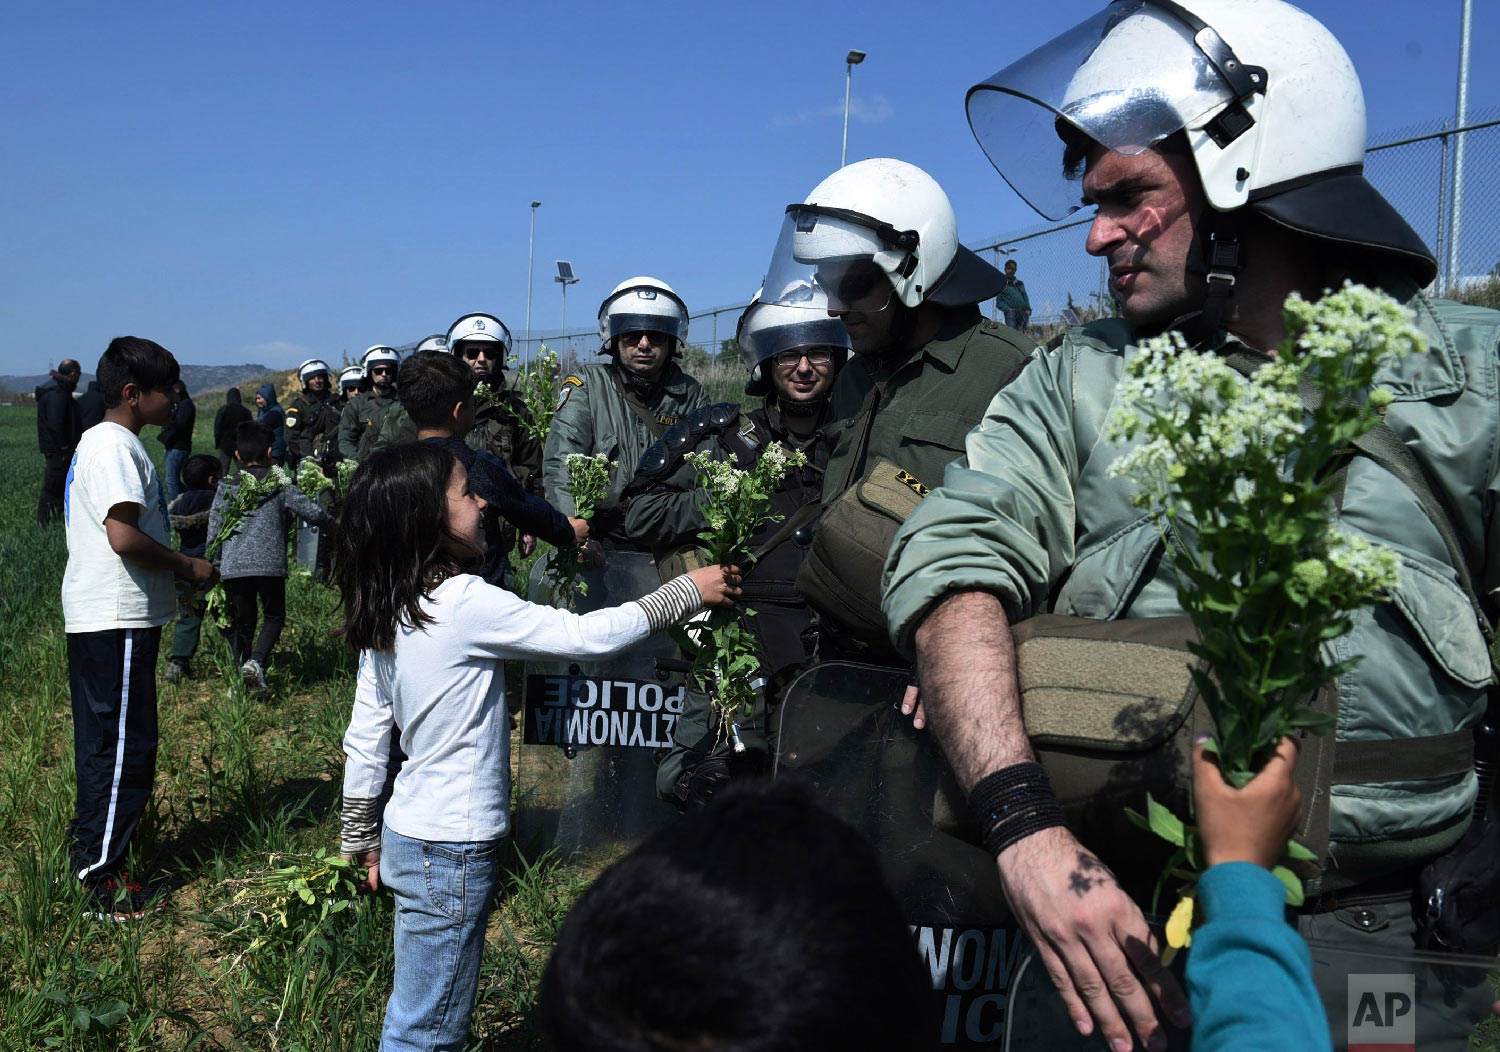 Children of migrants offer flowers to riot police during a rally outside a refugee camp in the village of Diavata, west of Thessaloniki, northern Greece, Thursday, April 4, 2019. (AP Photo/Giannis Papanikos)